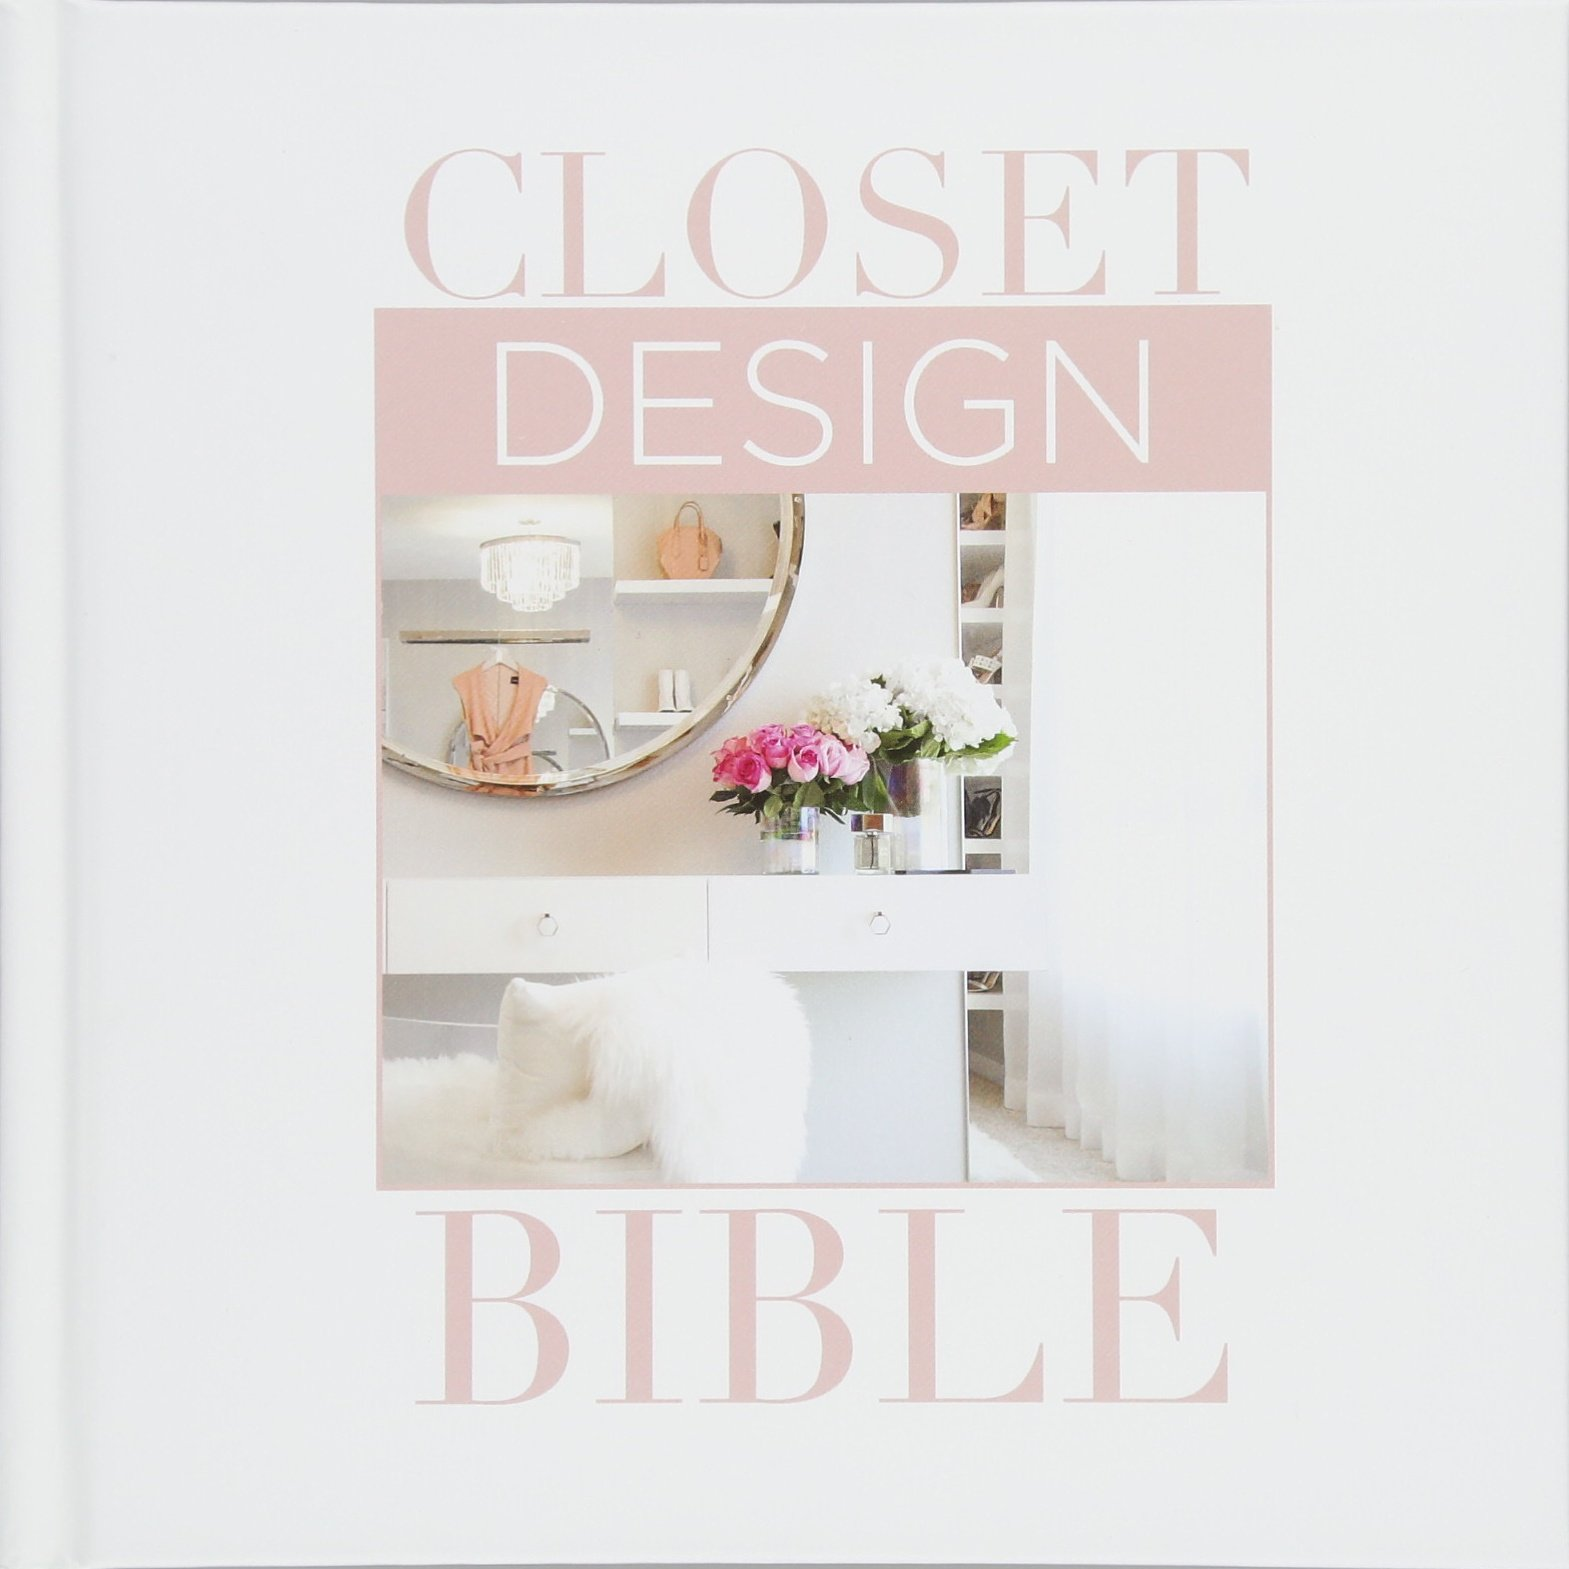 Closet Design Bible Lisa Adams 9781940743448 Amazoncom Books